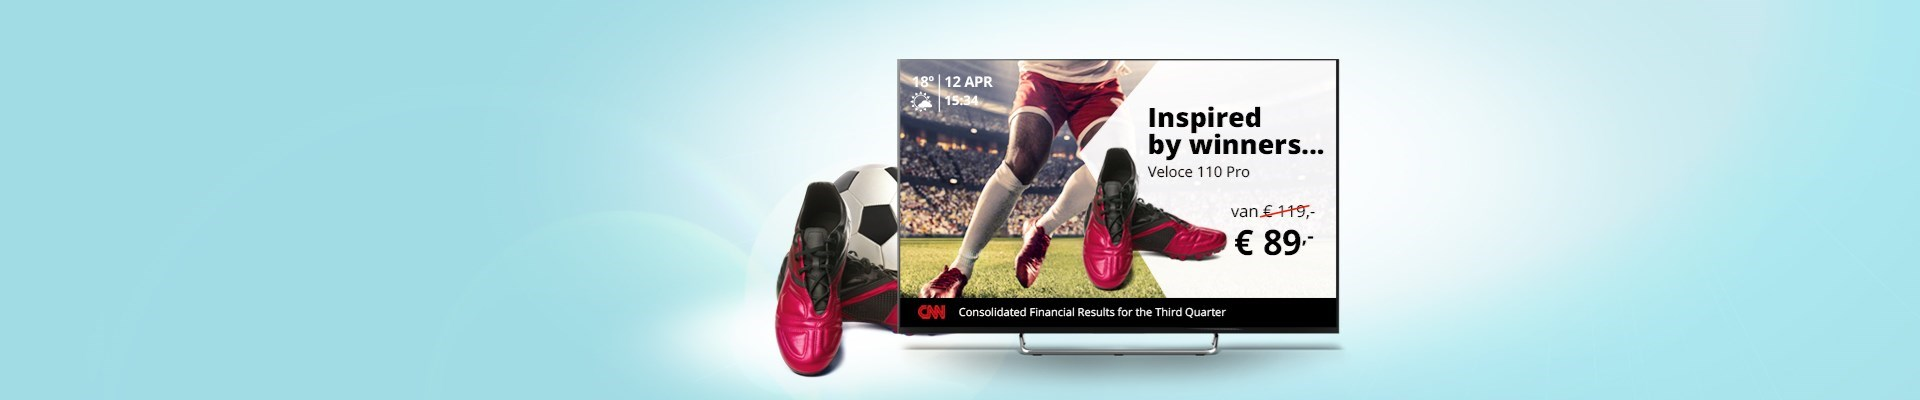 Narrowcasting Hardware